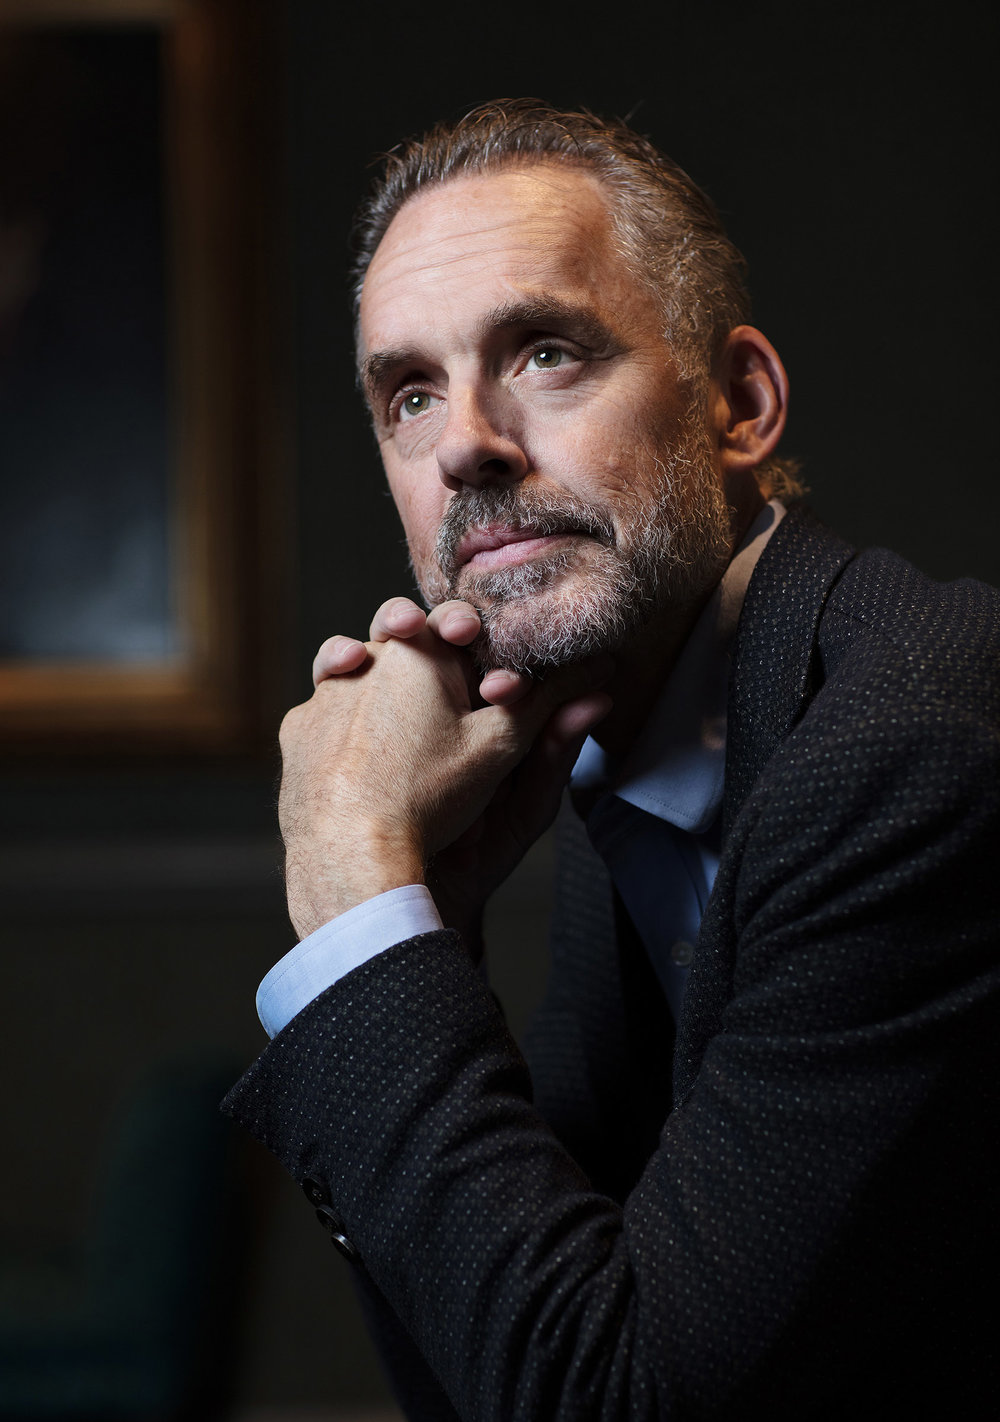 Jordan Peterson for Der Spiegel